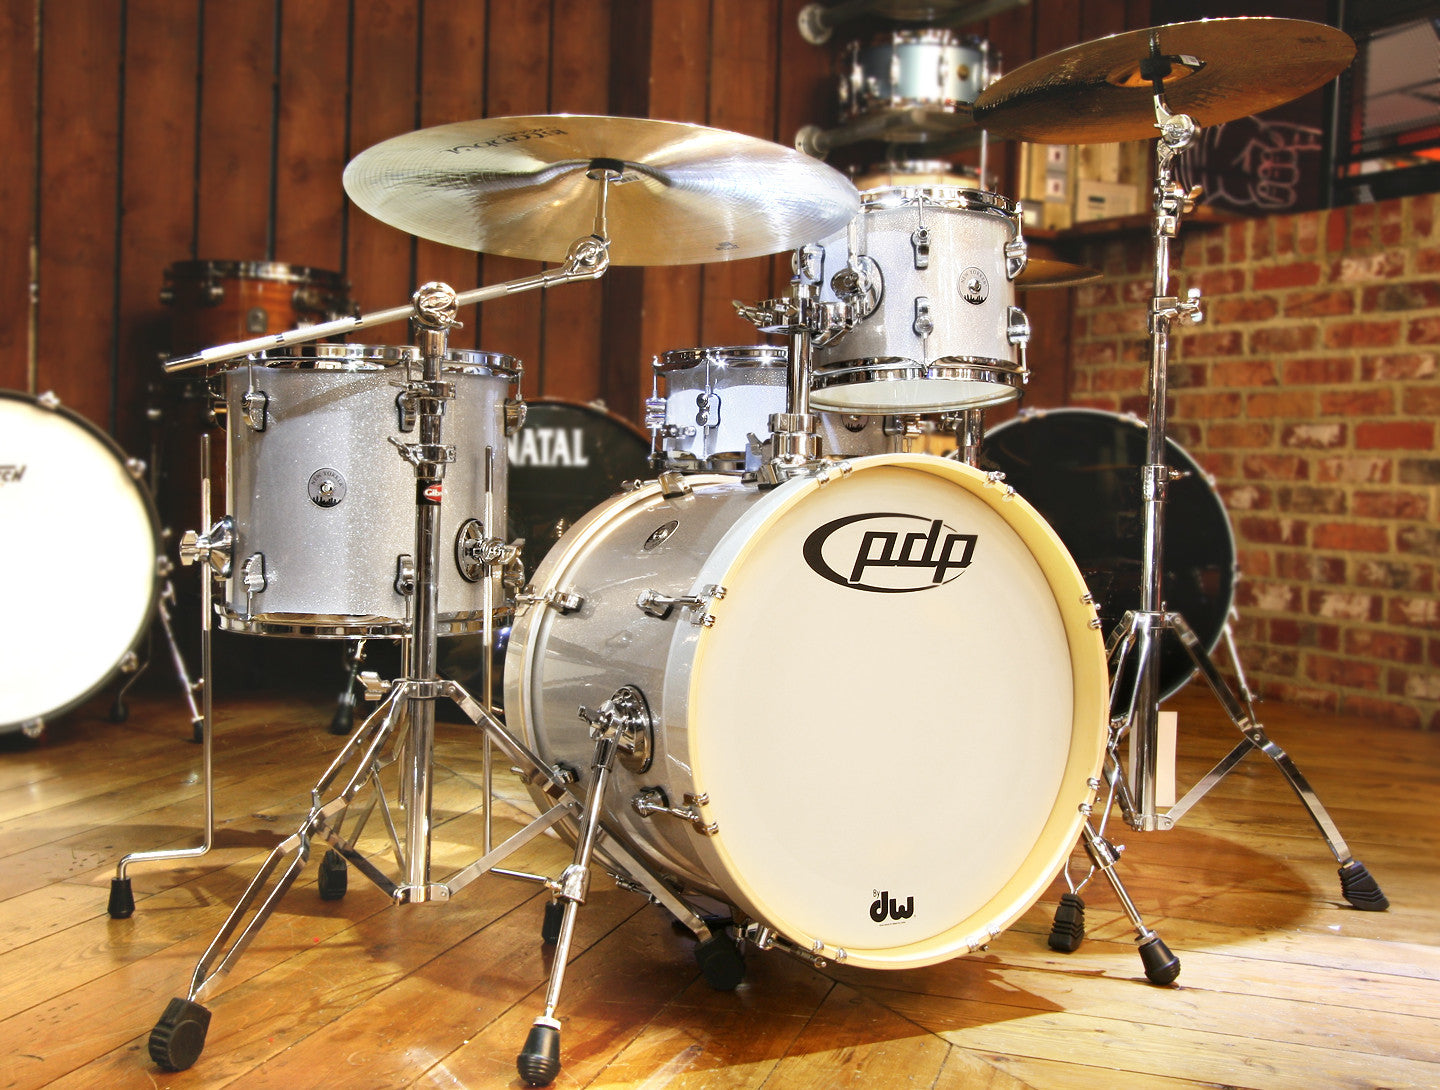 PDNY1804DS PDP New York Drum Kit